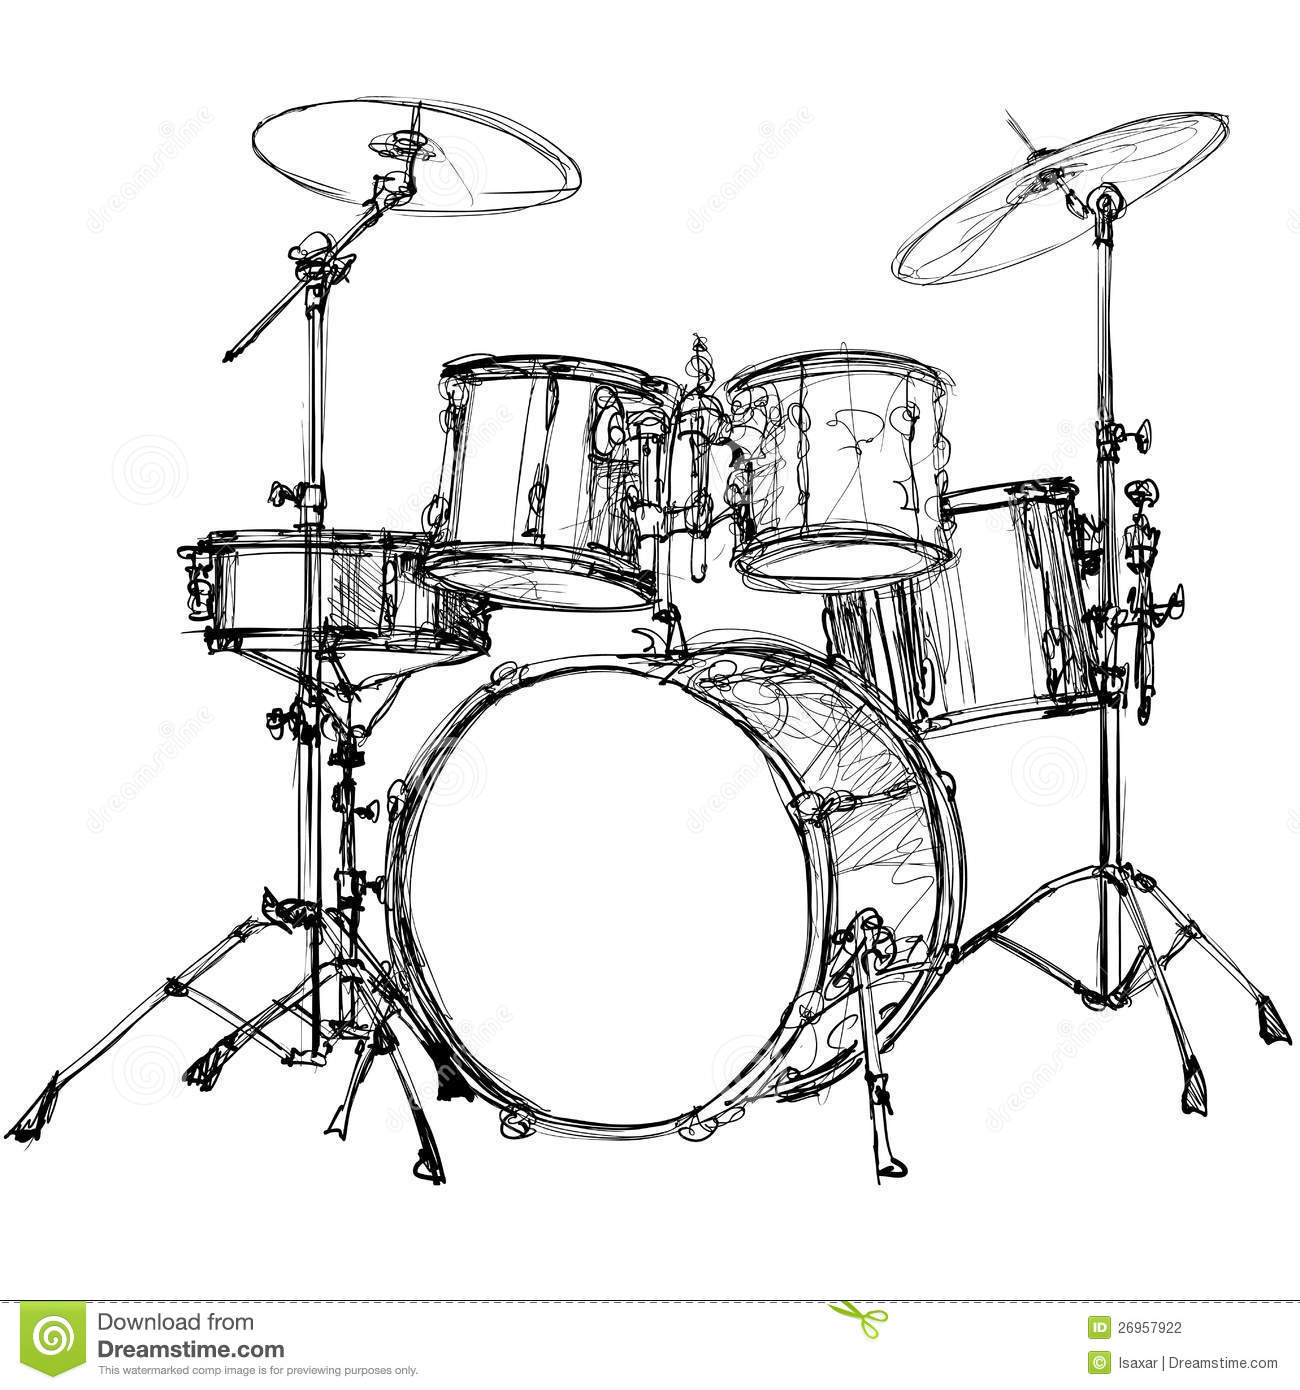 Drum Kit Stock Vector Illustration Of Musical Cymbal